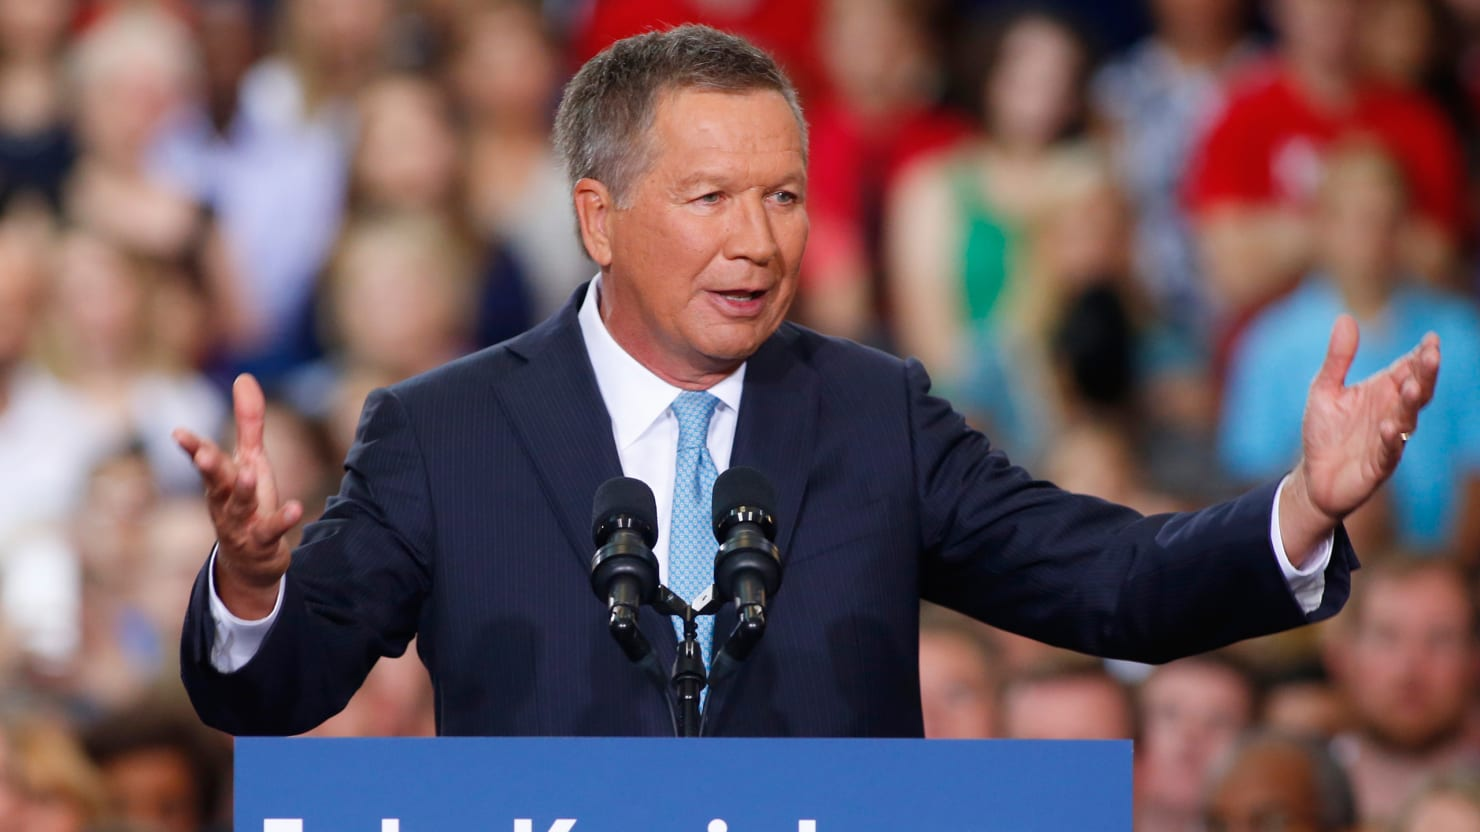 John Kasich Enters the Race for Relevance